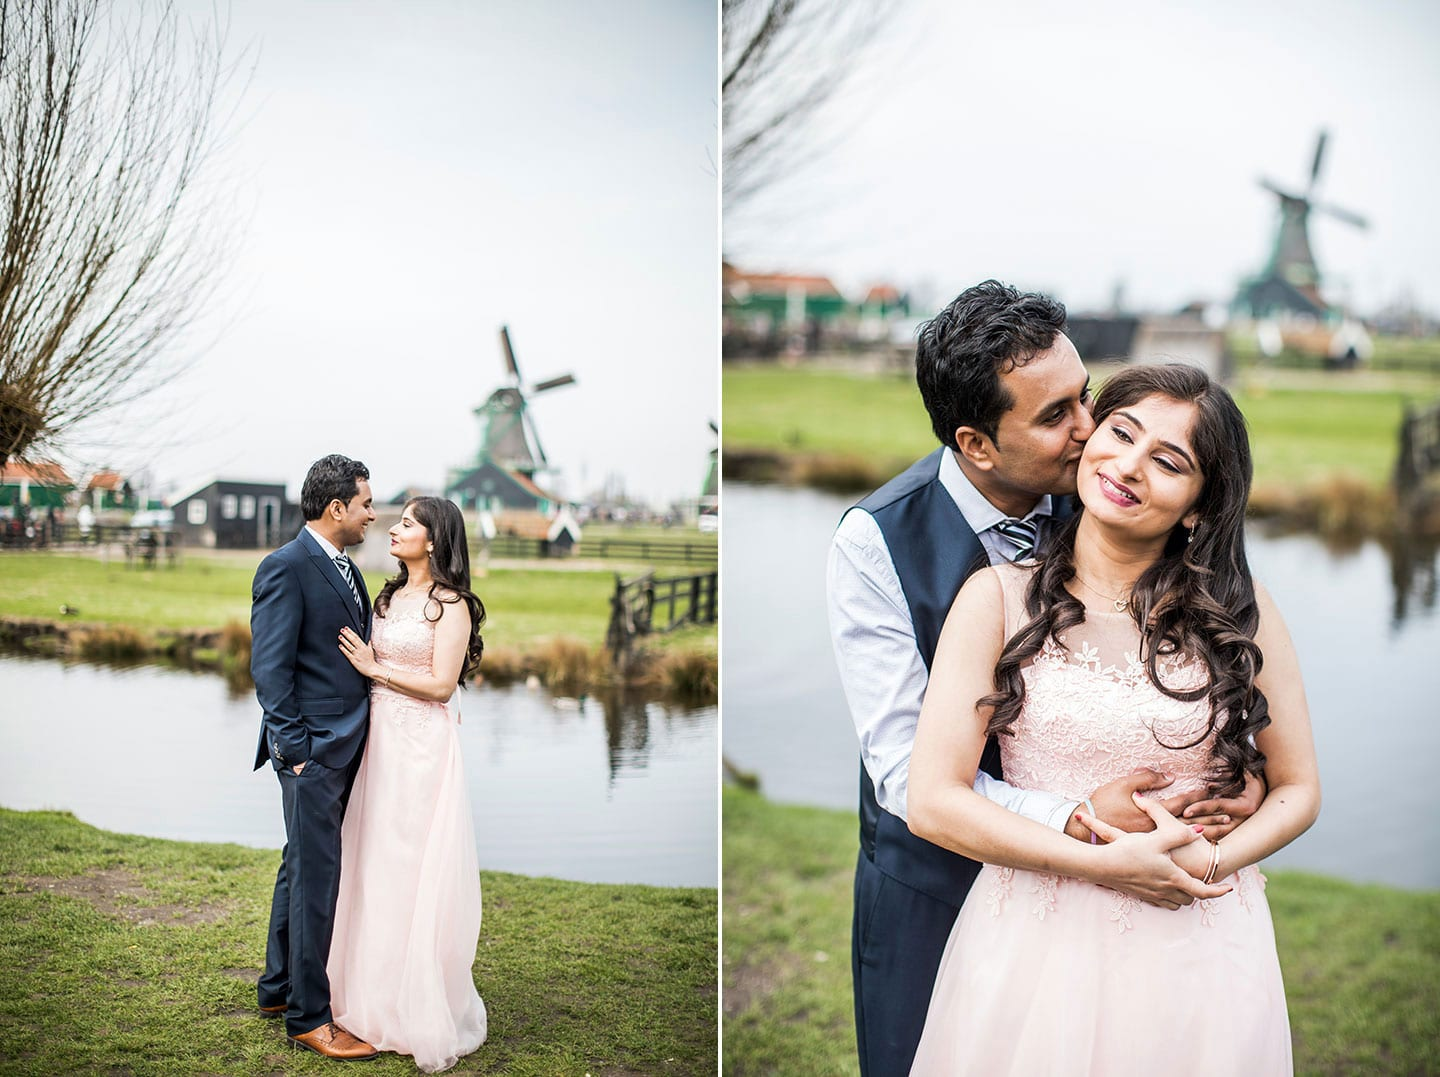 Prewedding Indian couple Holland windmills